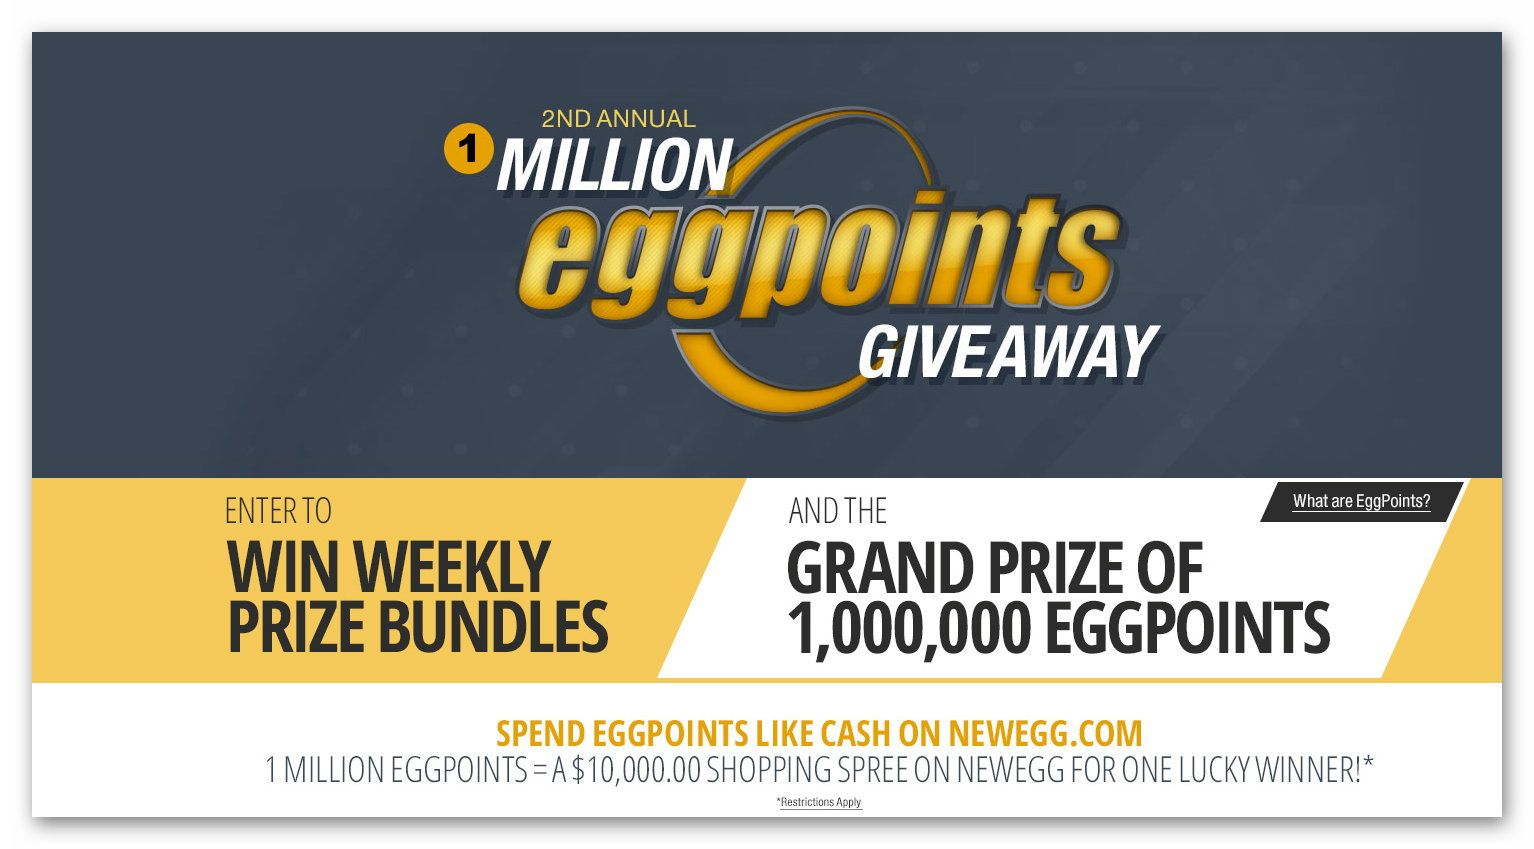 Newegg sweepstakes winner